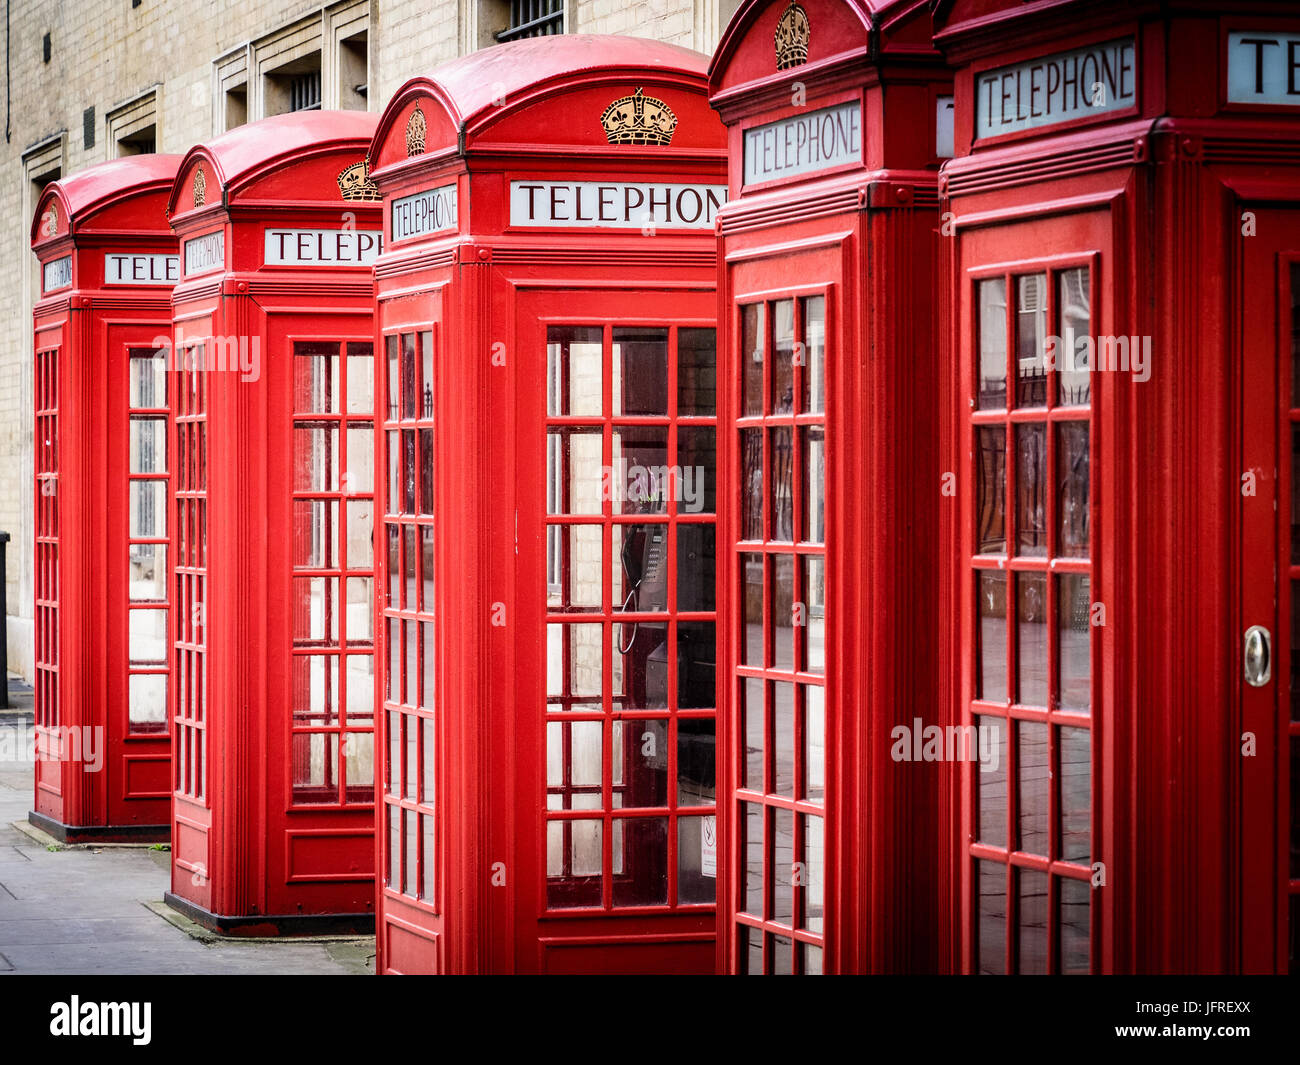 Traditional Red British Telephone Boxes, designed by Sir Giles Gilbert Scott, in London's West End - Stock Image